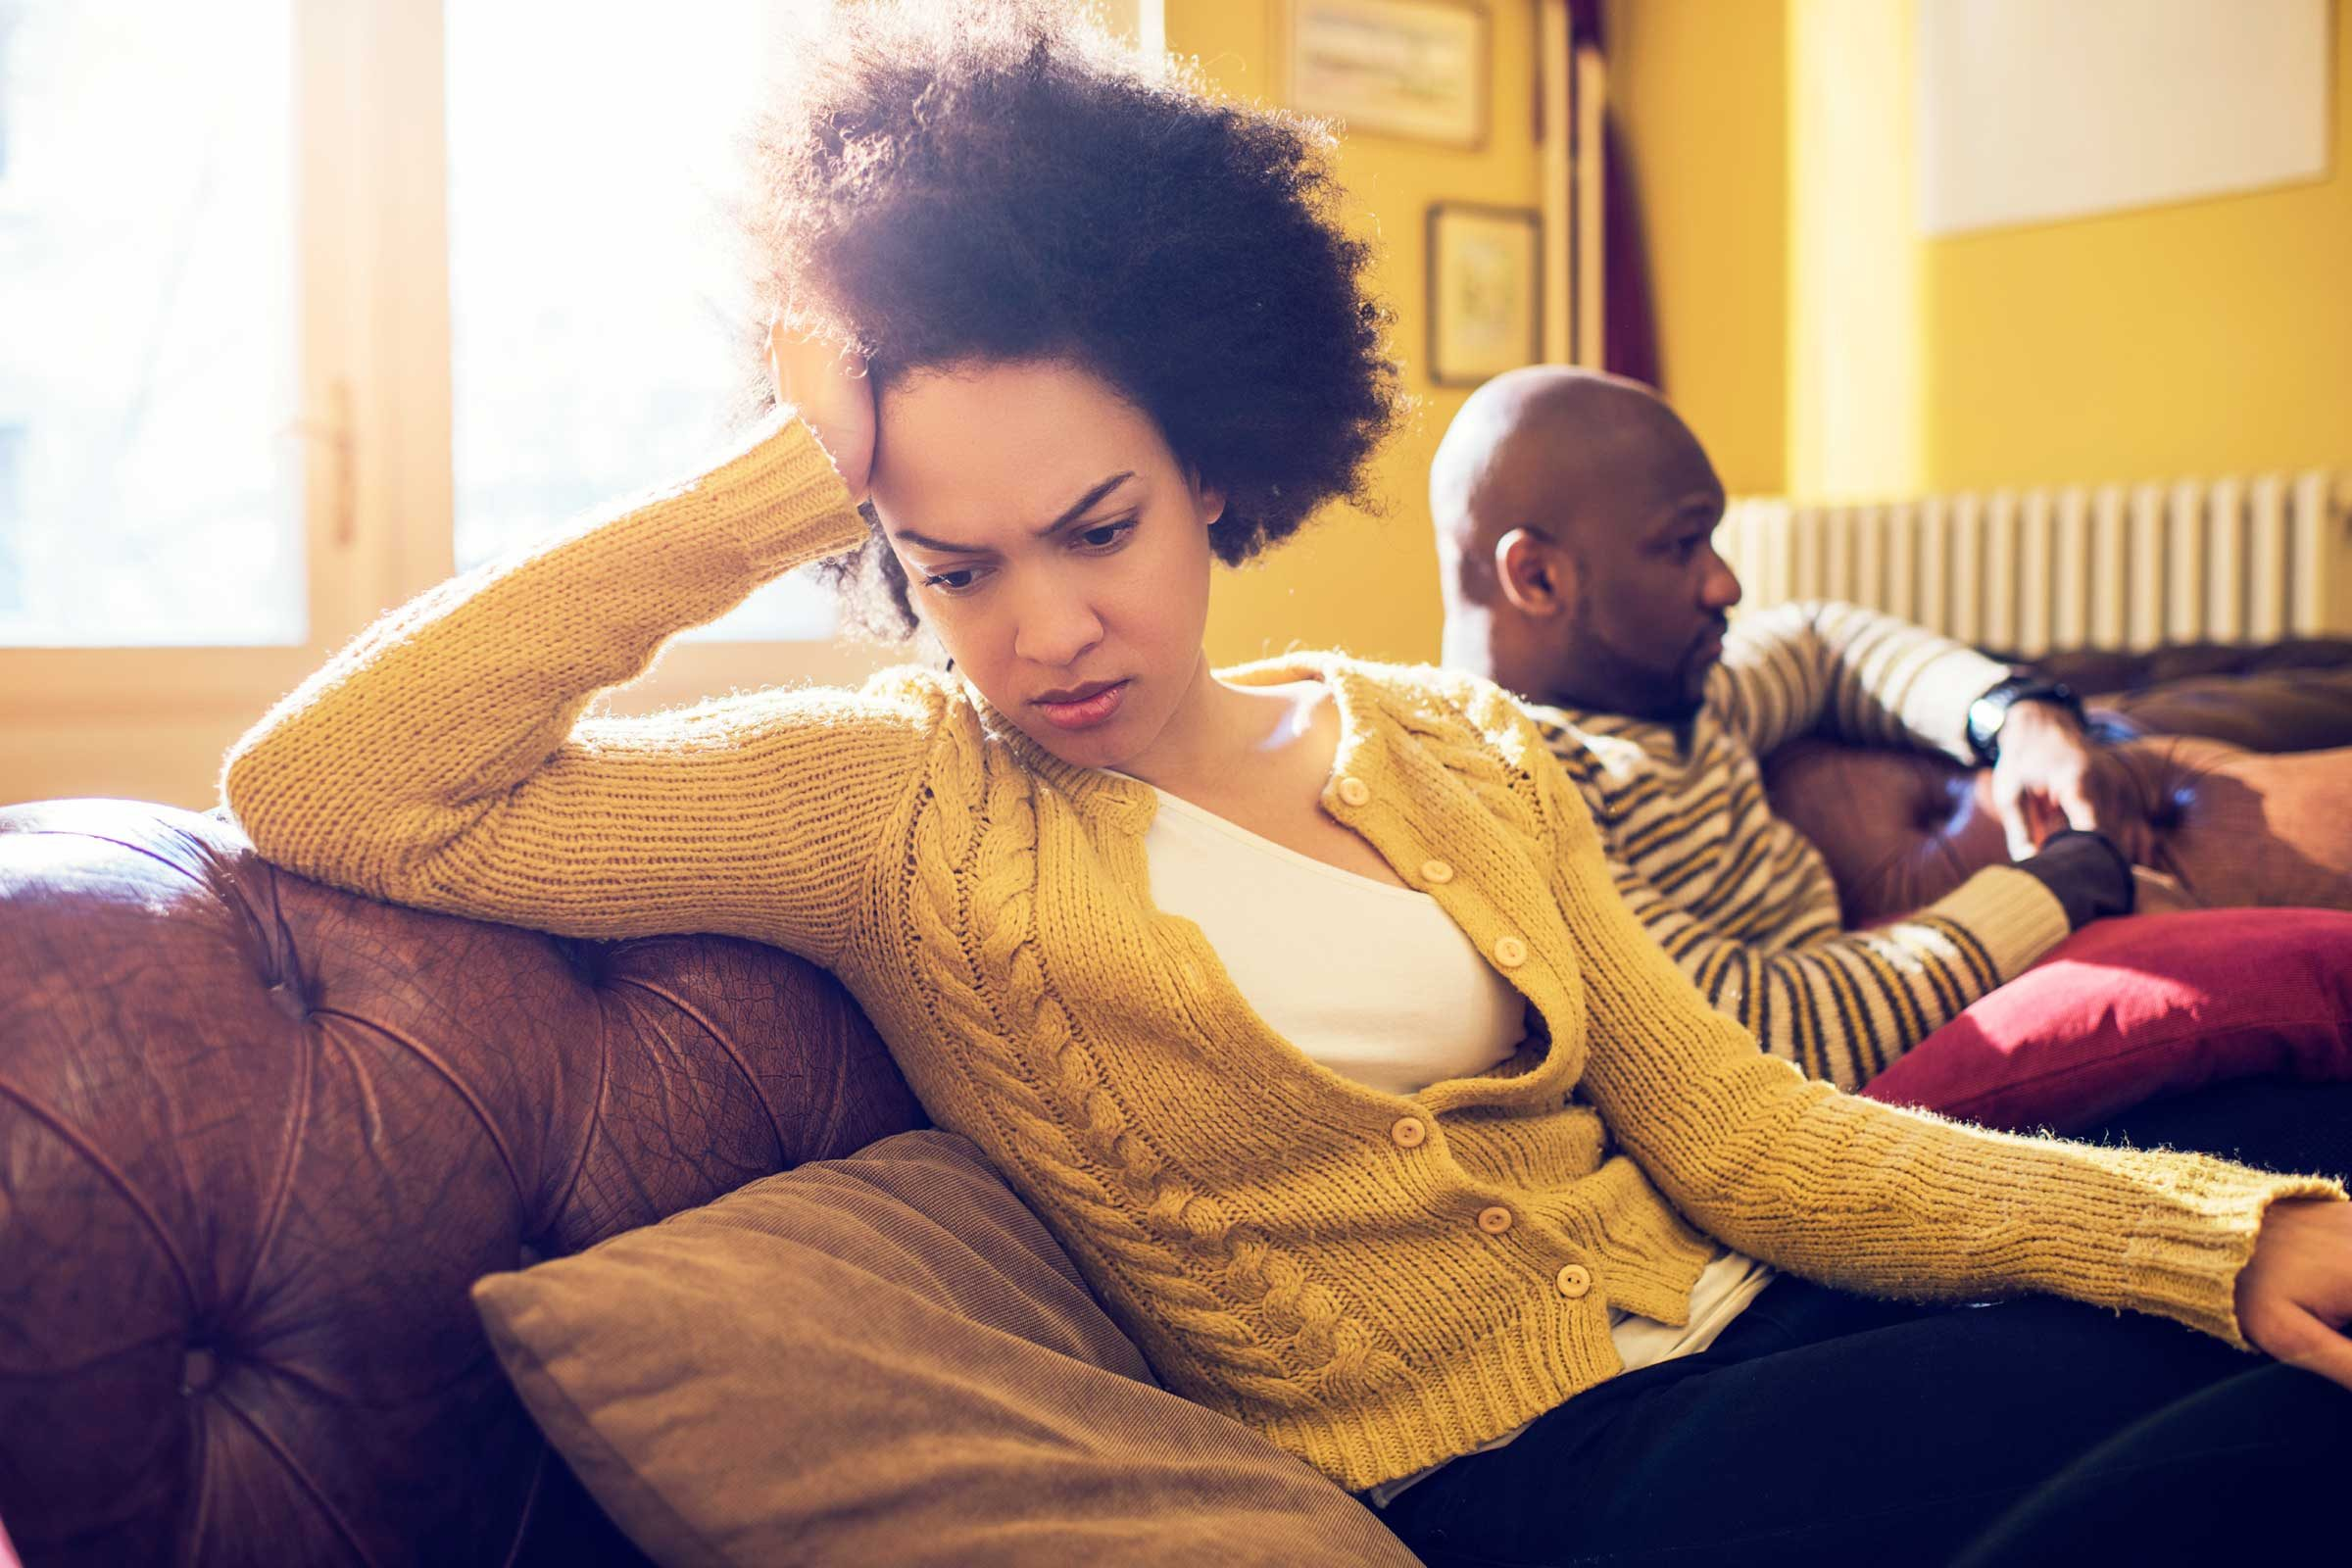 Signs of Cheating: How to Tell You've Got a Cheating Spouse